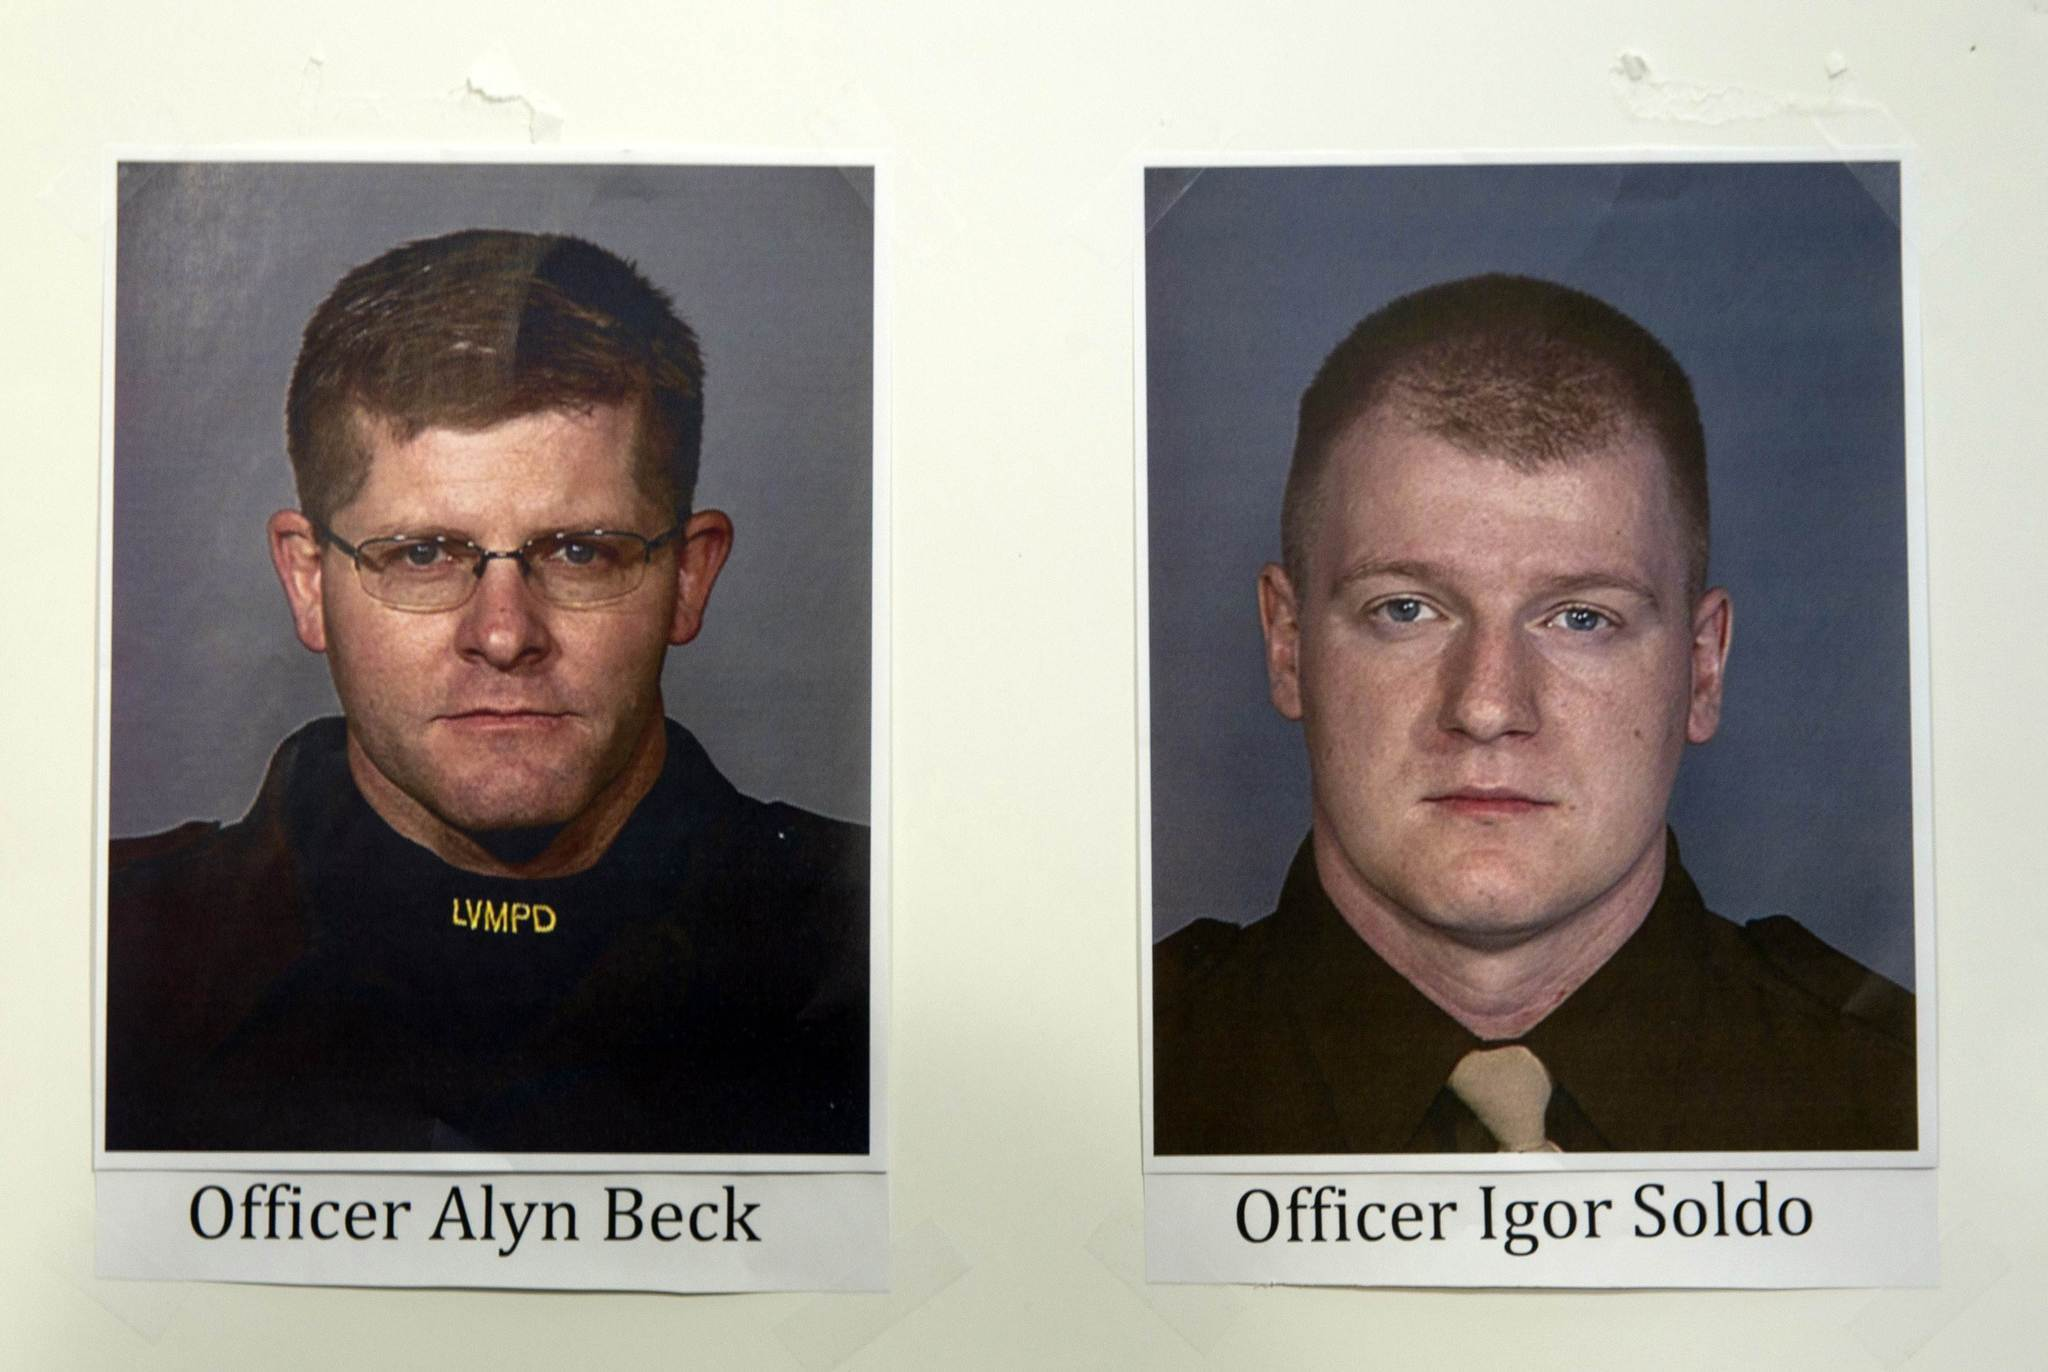 Photos of slain Metro Police officers Alyn Beck and Igor Soldo are displayed during a news conference at Metro headquarters following the death of the two officers and a citizen in Las Vegas.